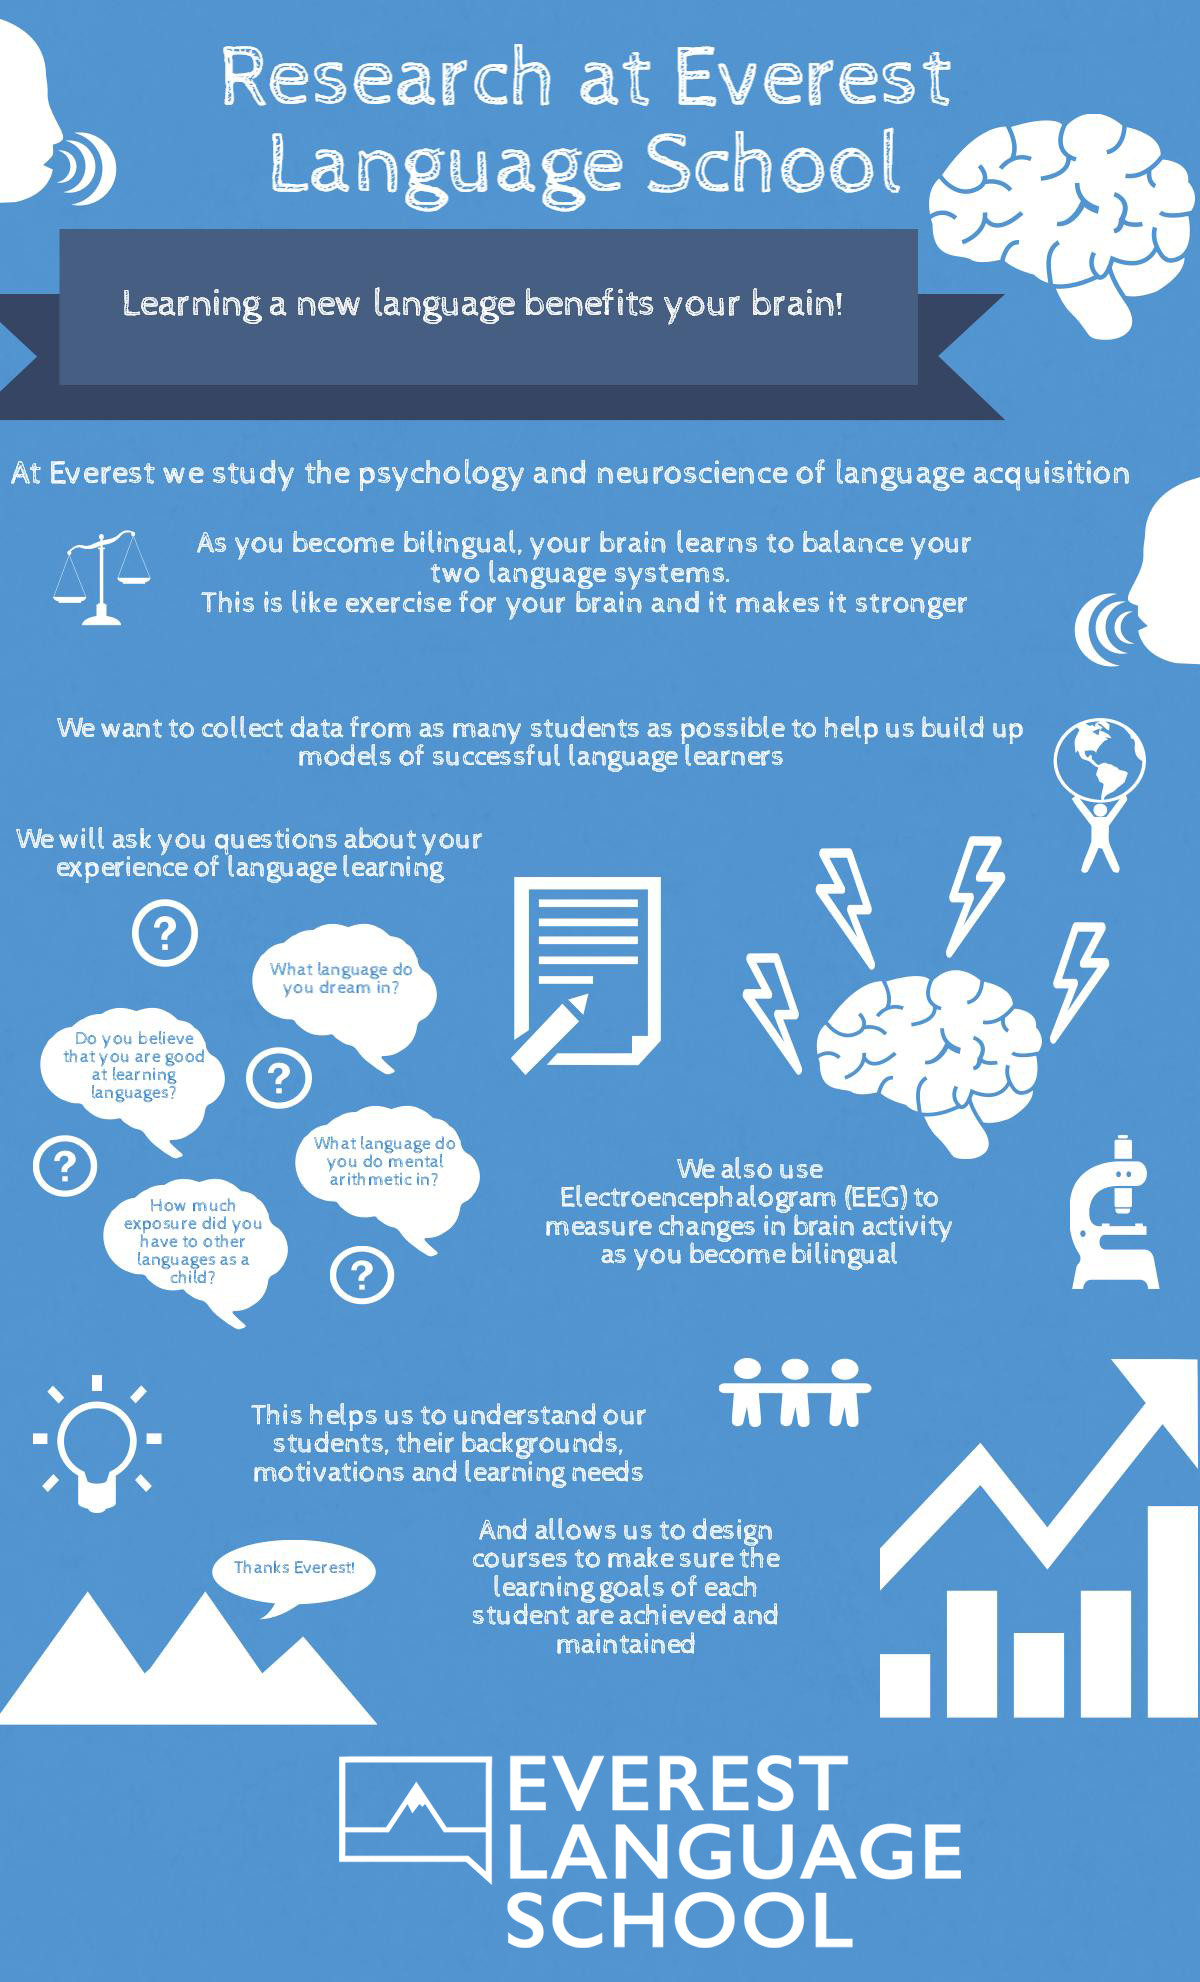 Research at Everest Language School